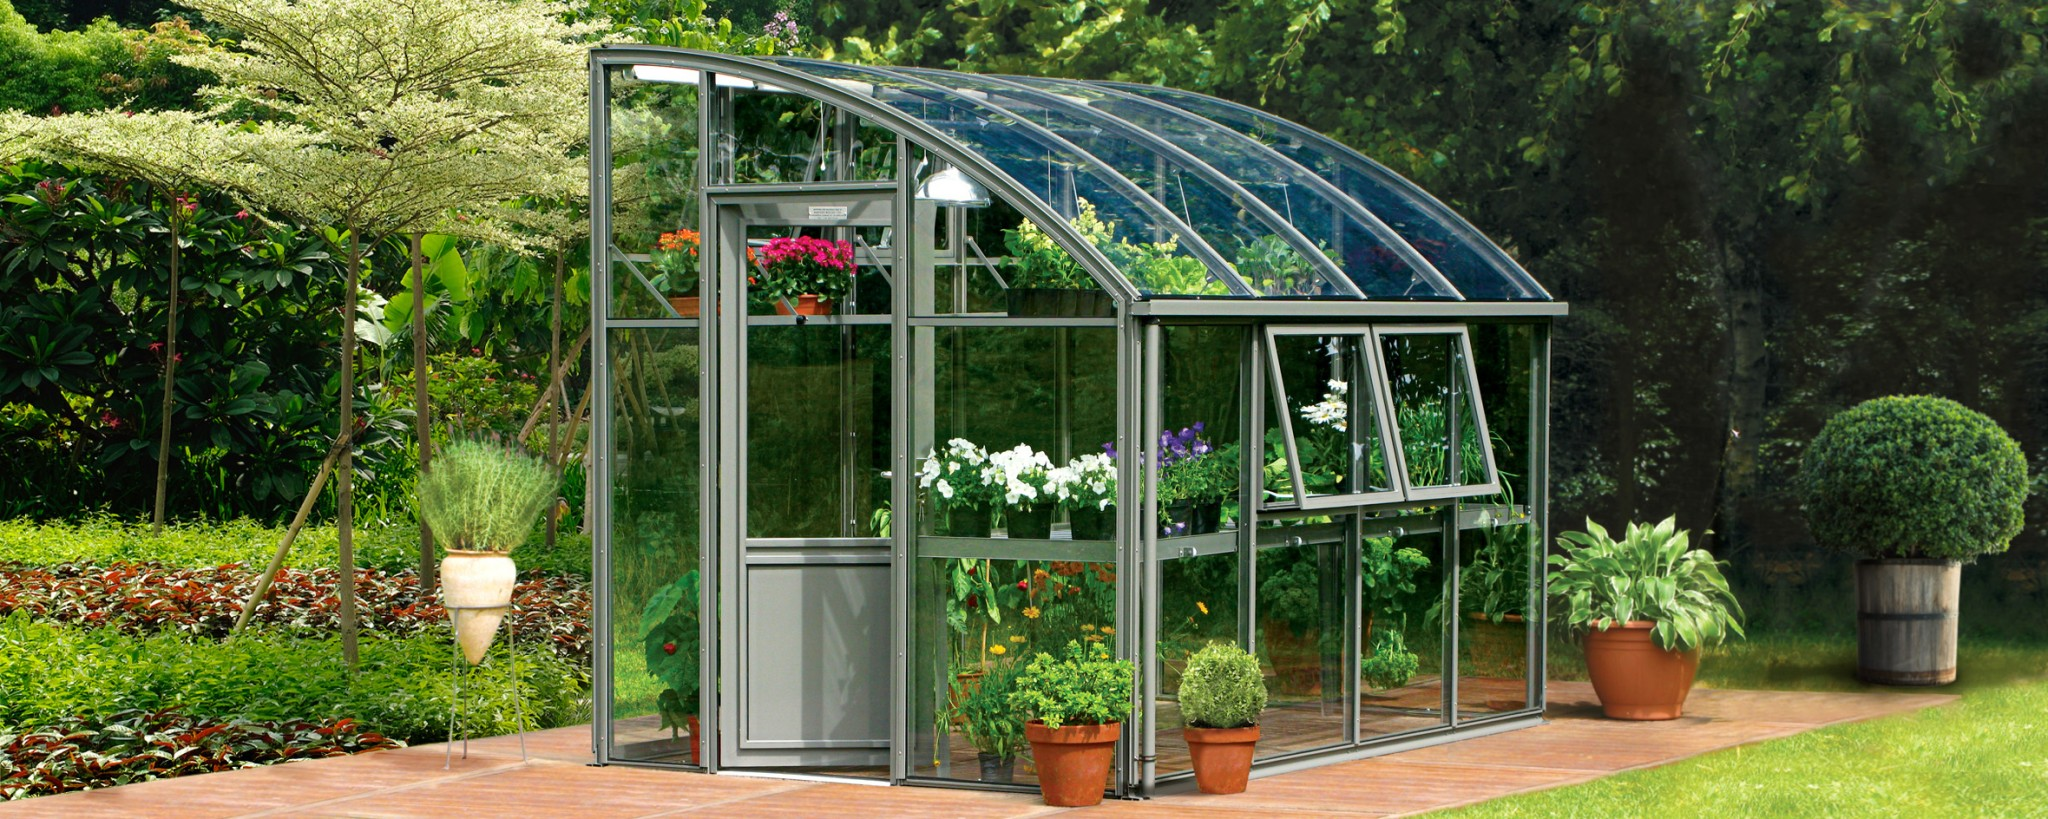 Green Houses For Sale on Gothic Arch Greenhouse Plans